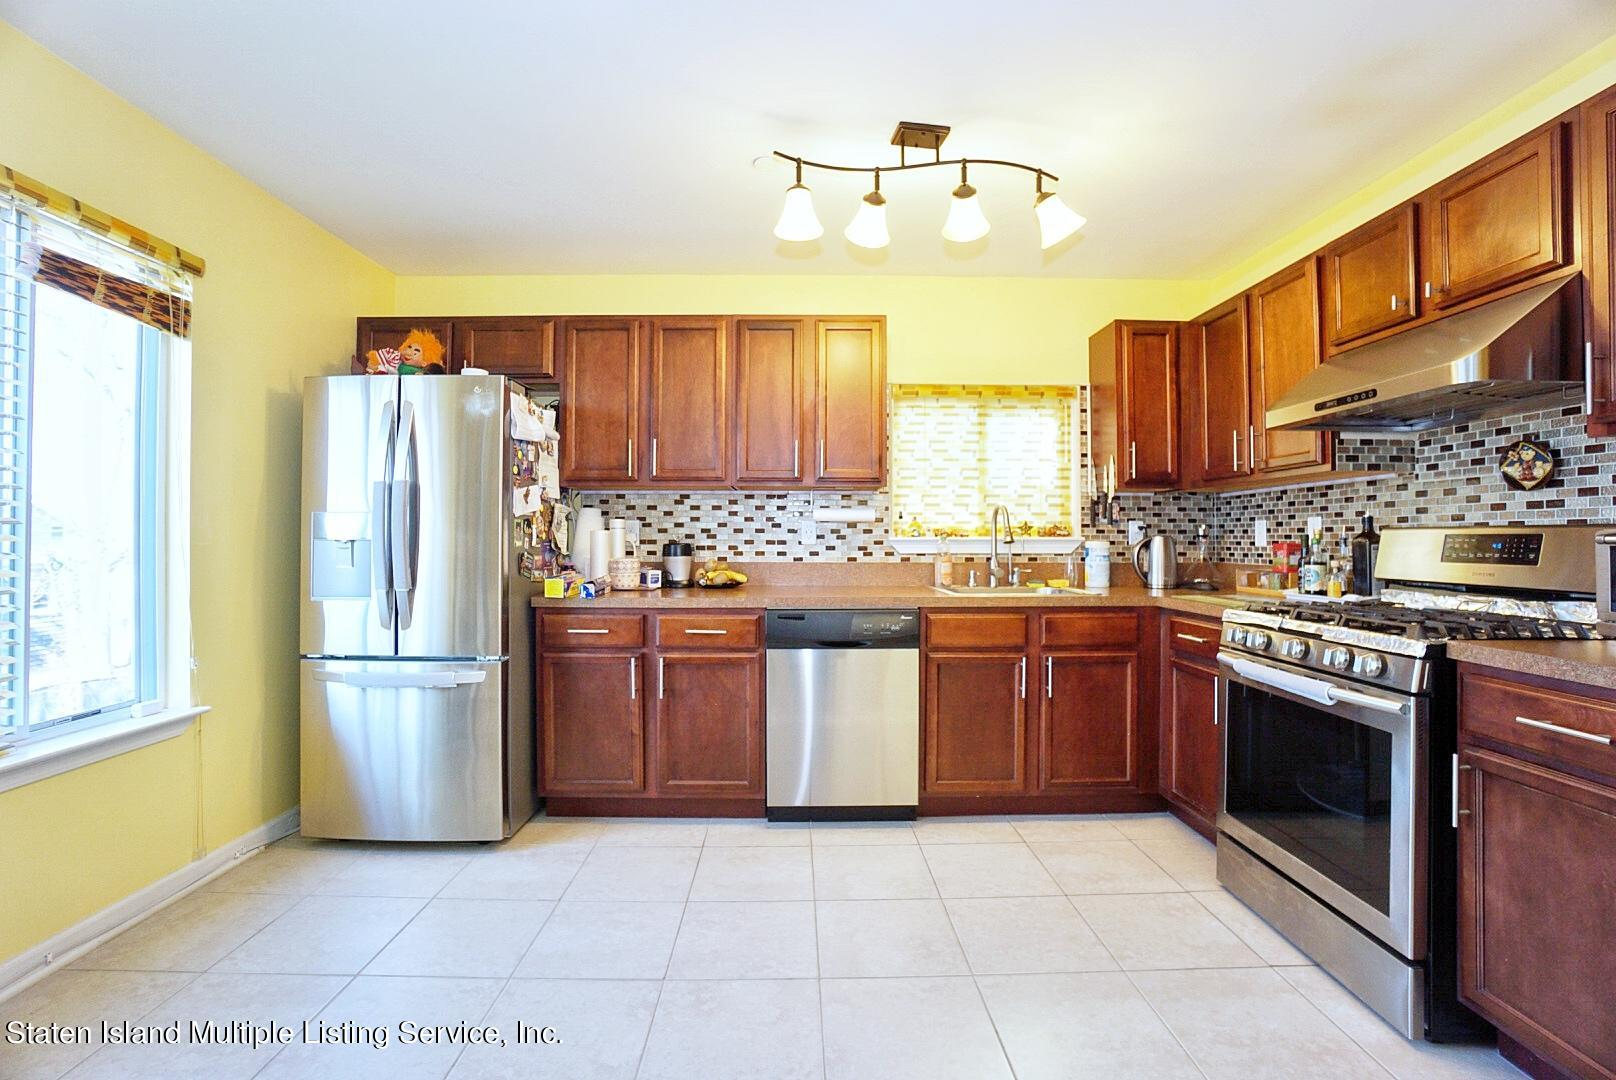 Single Family - Detached 171 Benziger Avenue  Staten Island, NY 10301, MLS-1145235-12